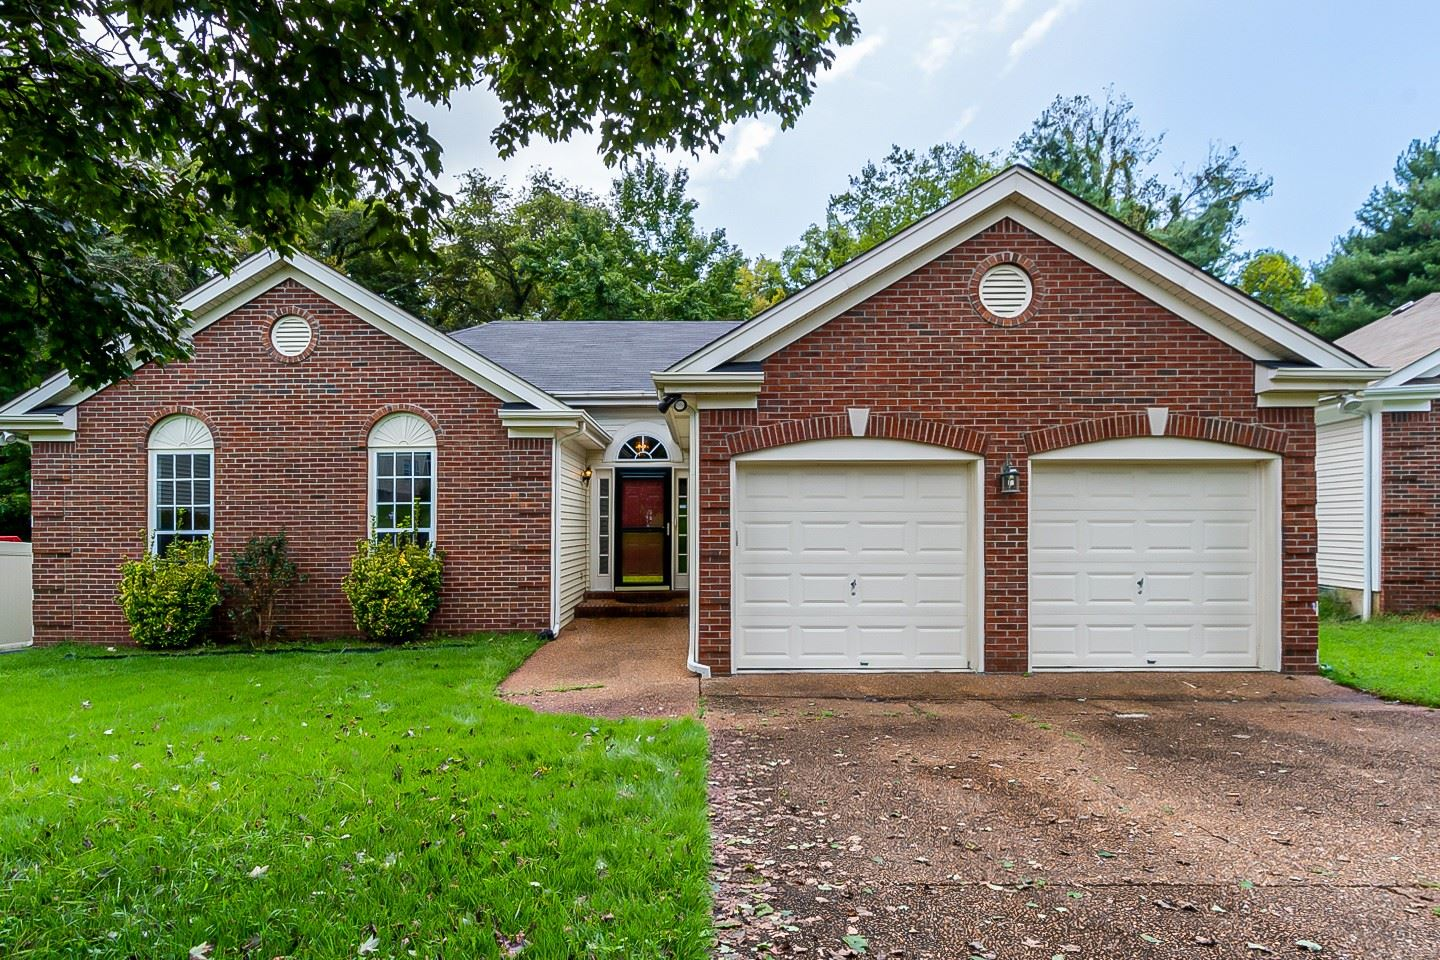 1461 Aaronwood Dr, Old Hickory, TN 37138 - MLS#: 2295479